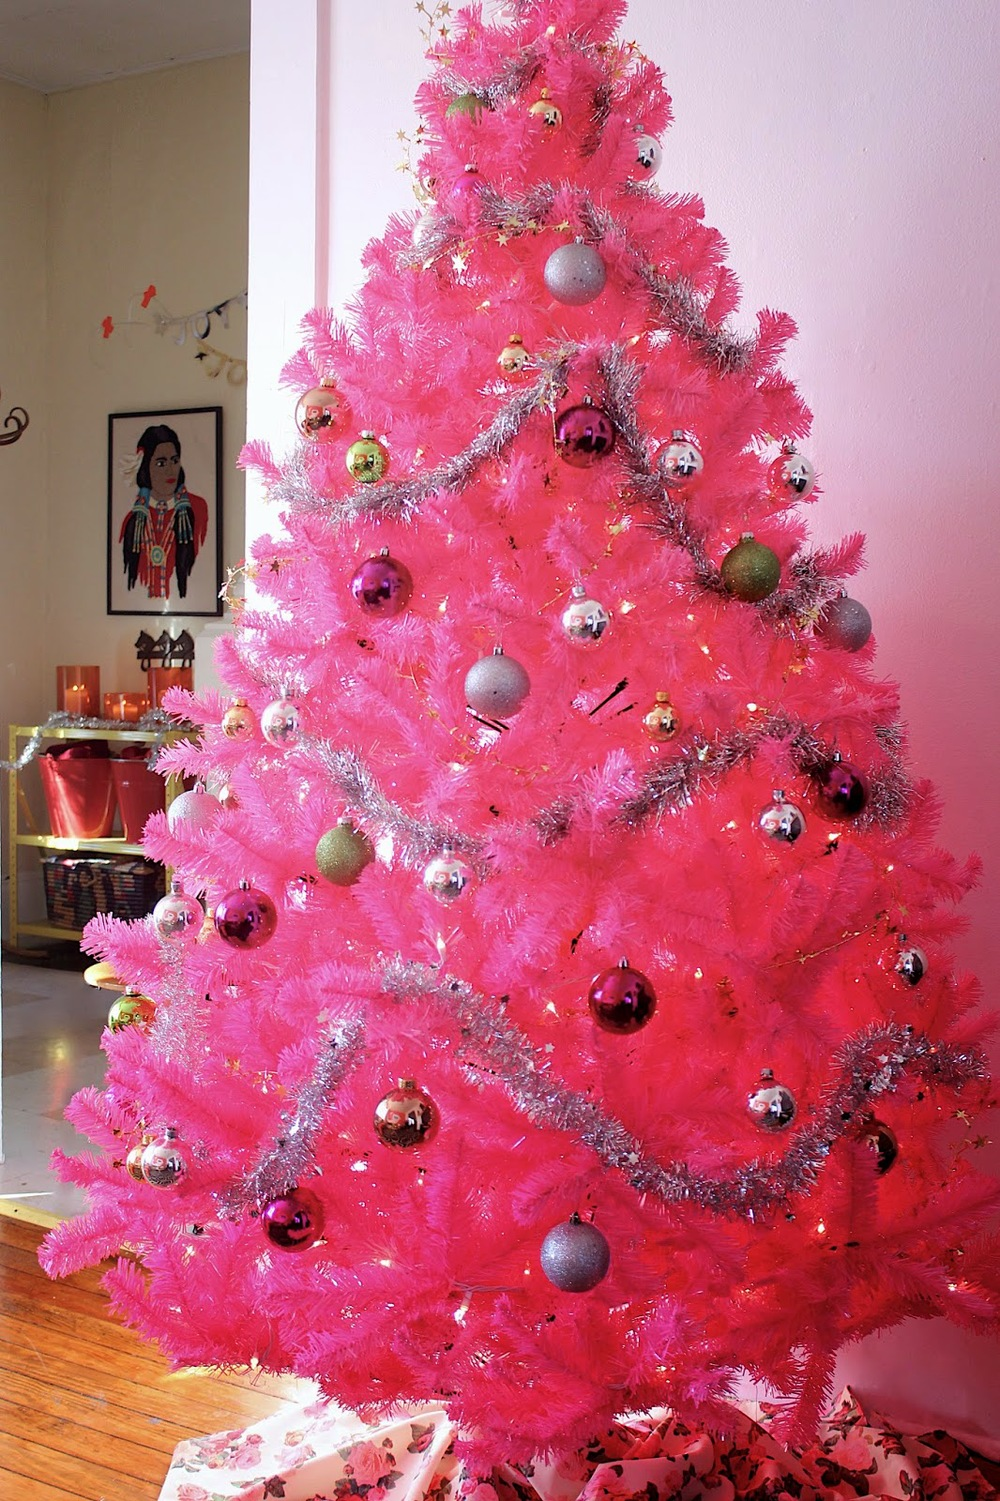 Hot pink christmas tree decorations - Pink 2bchristmas 2btree 2b12 Jpg